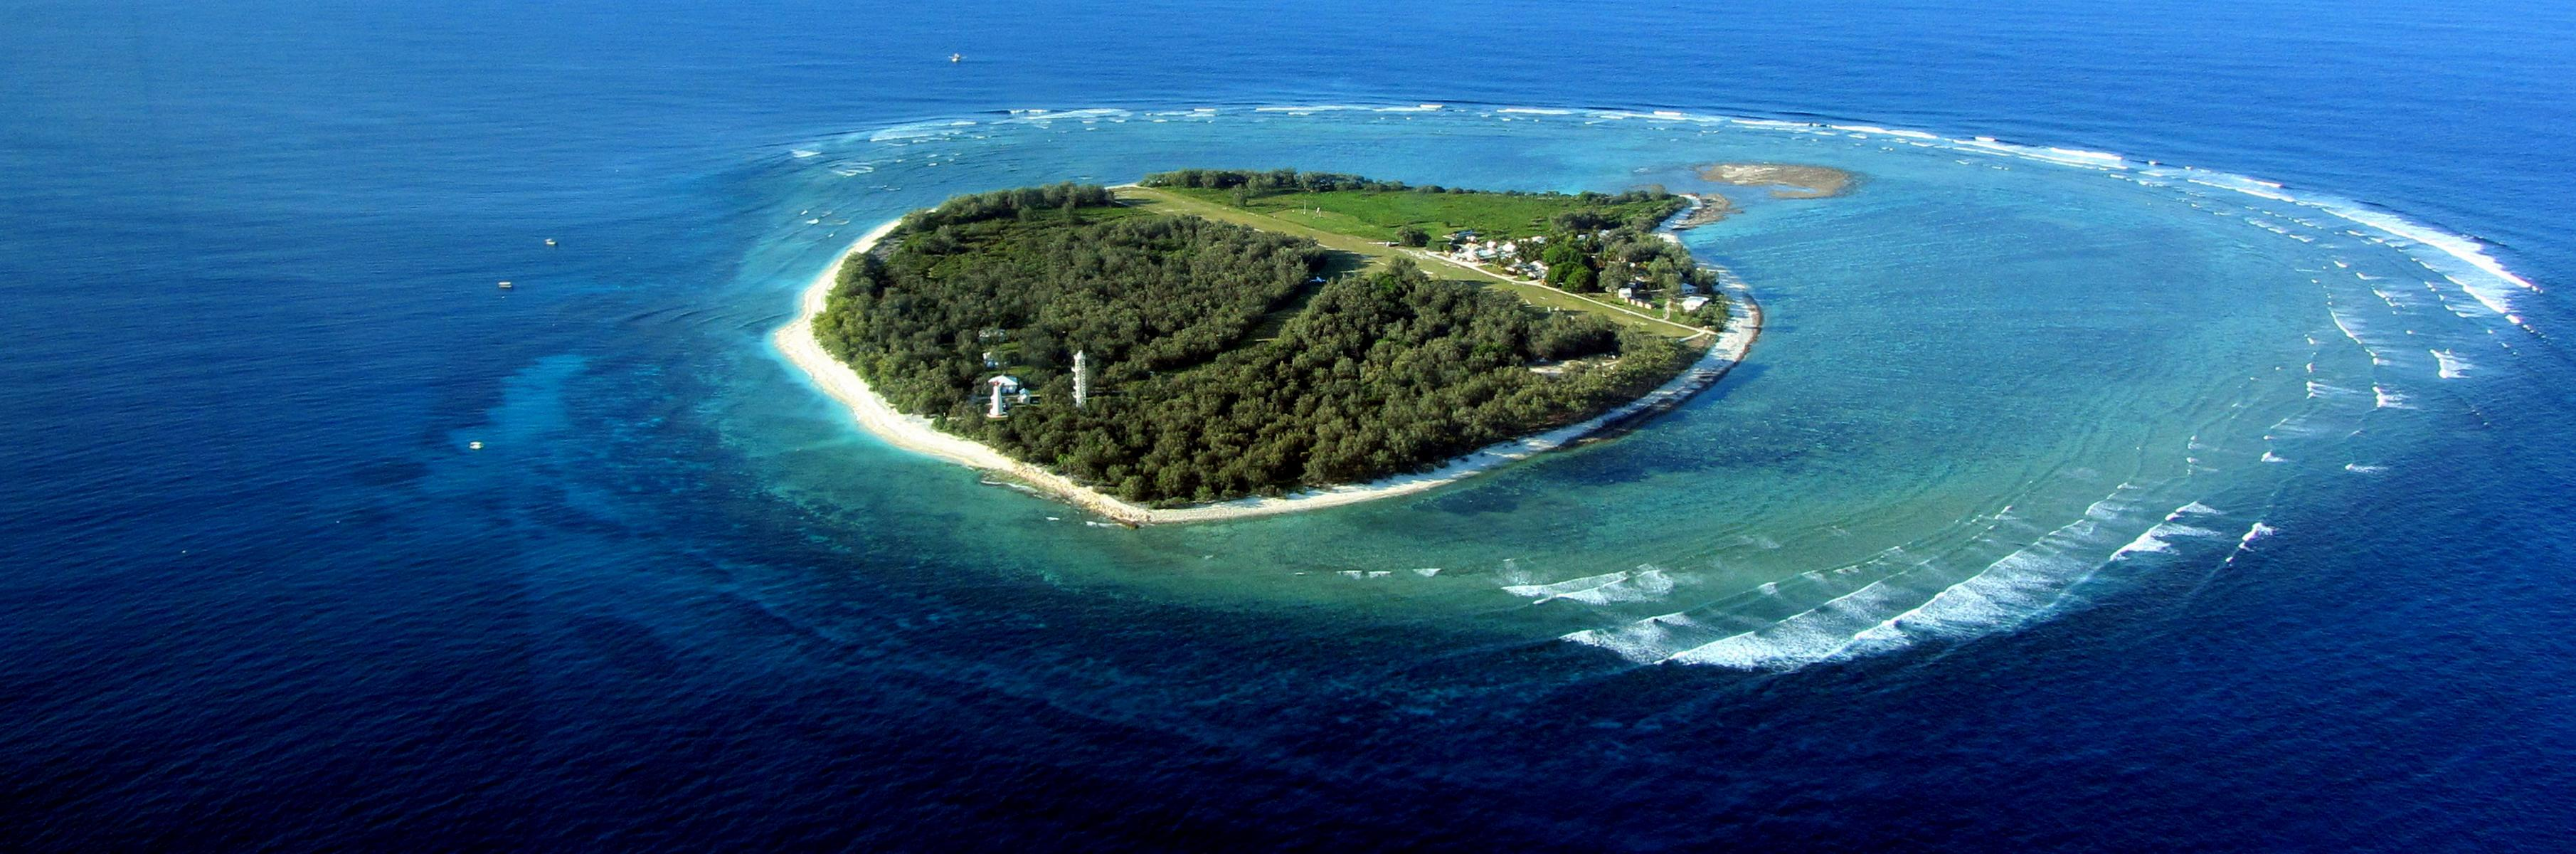 Lady Elliot Island, Great Barrier Reef Queensland Australia